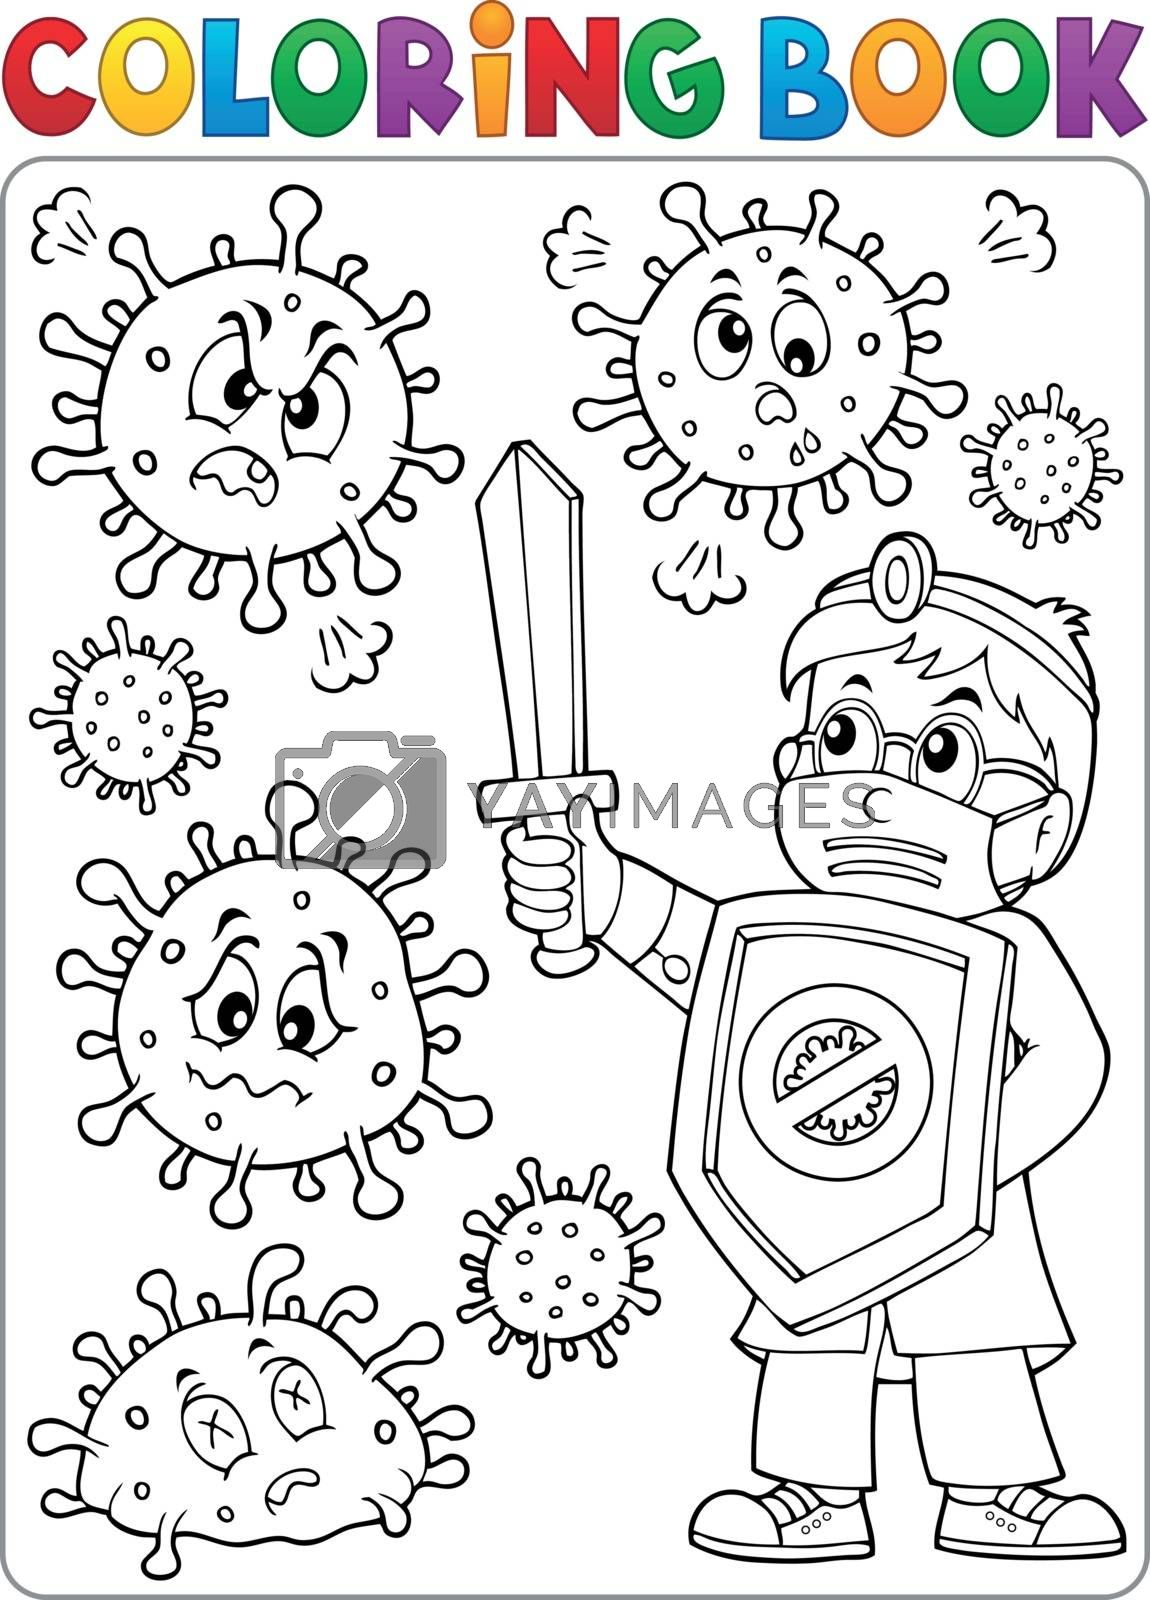 Coloring book doctor fighting virus 2 - eps10 vector illustration.